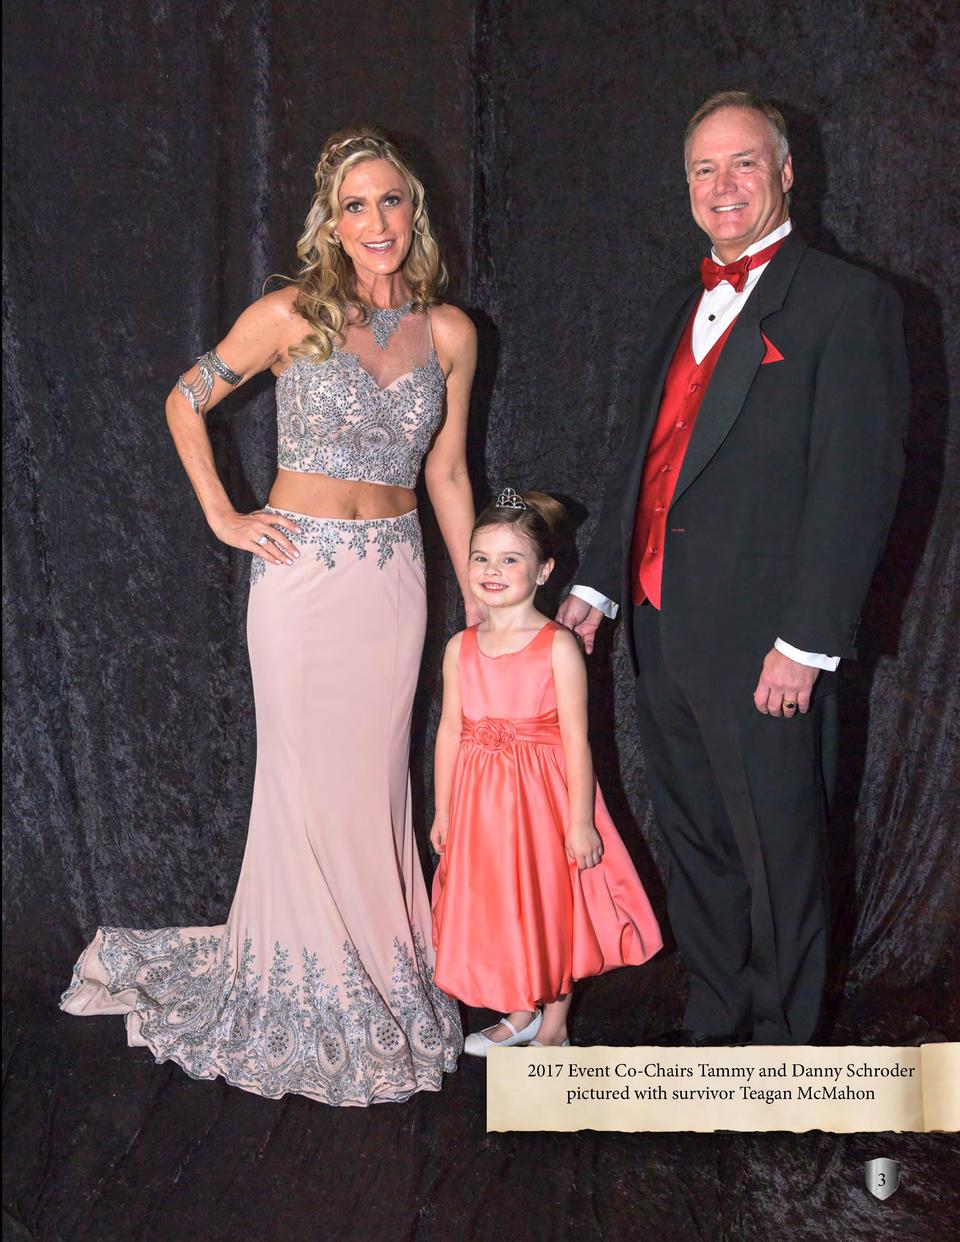 2017 Event Co-Chairs Tammy and Danny Schroder pictured with survivor Teagan McMahon  3